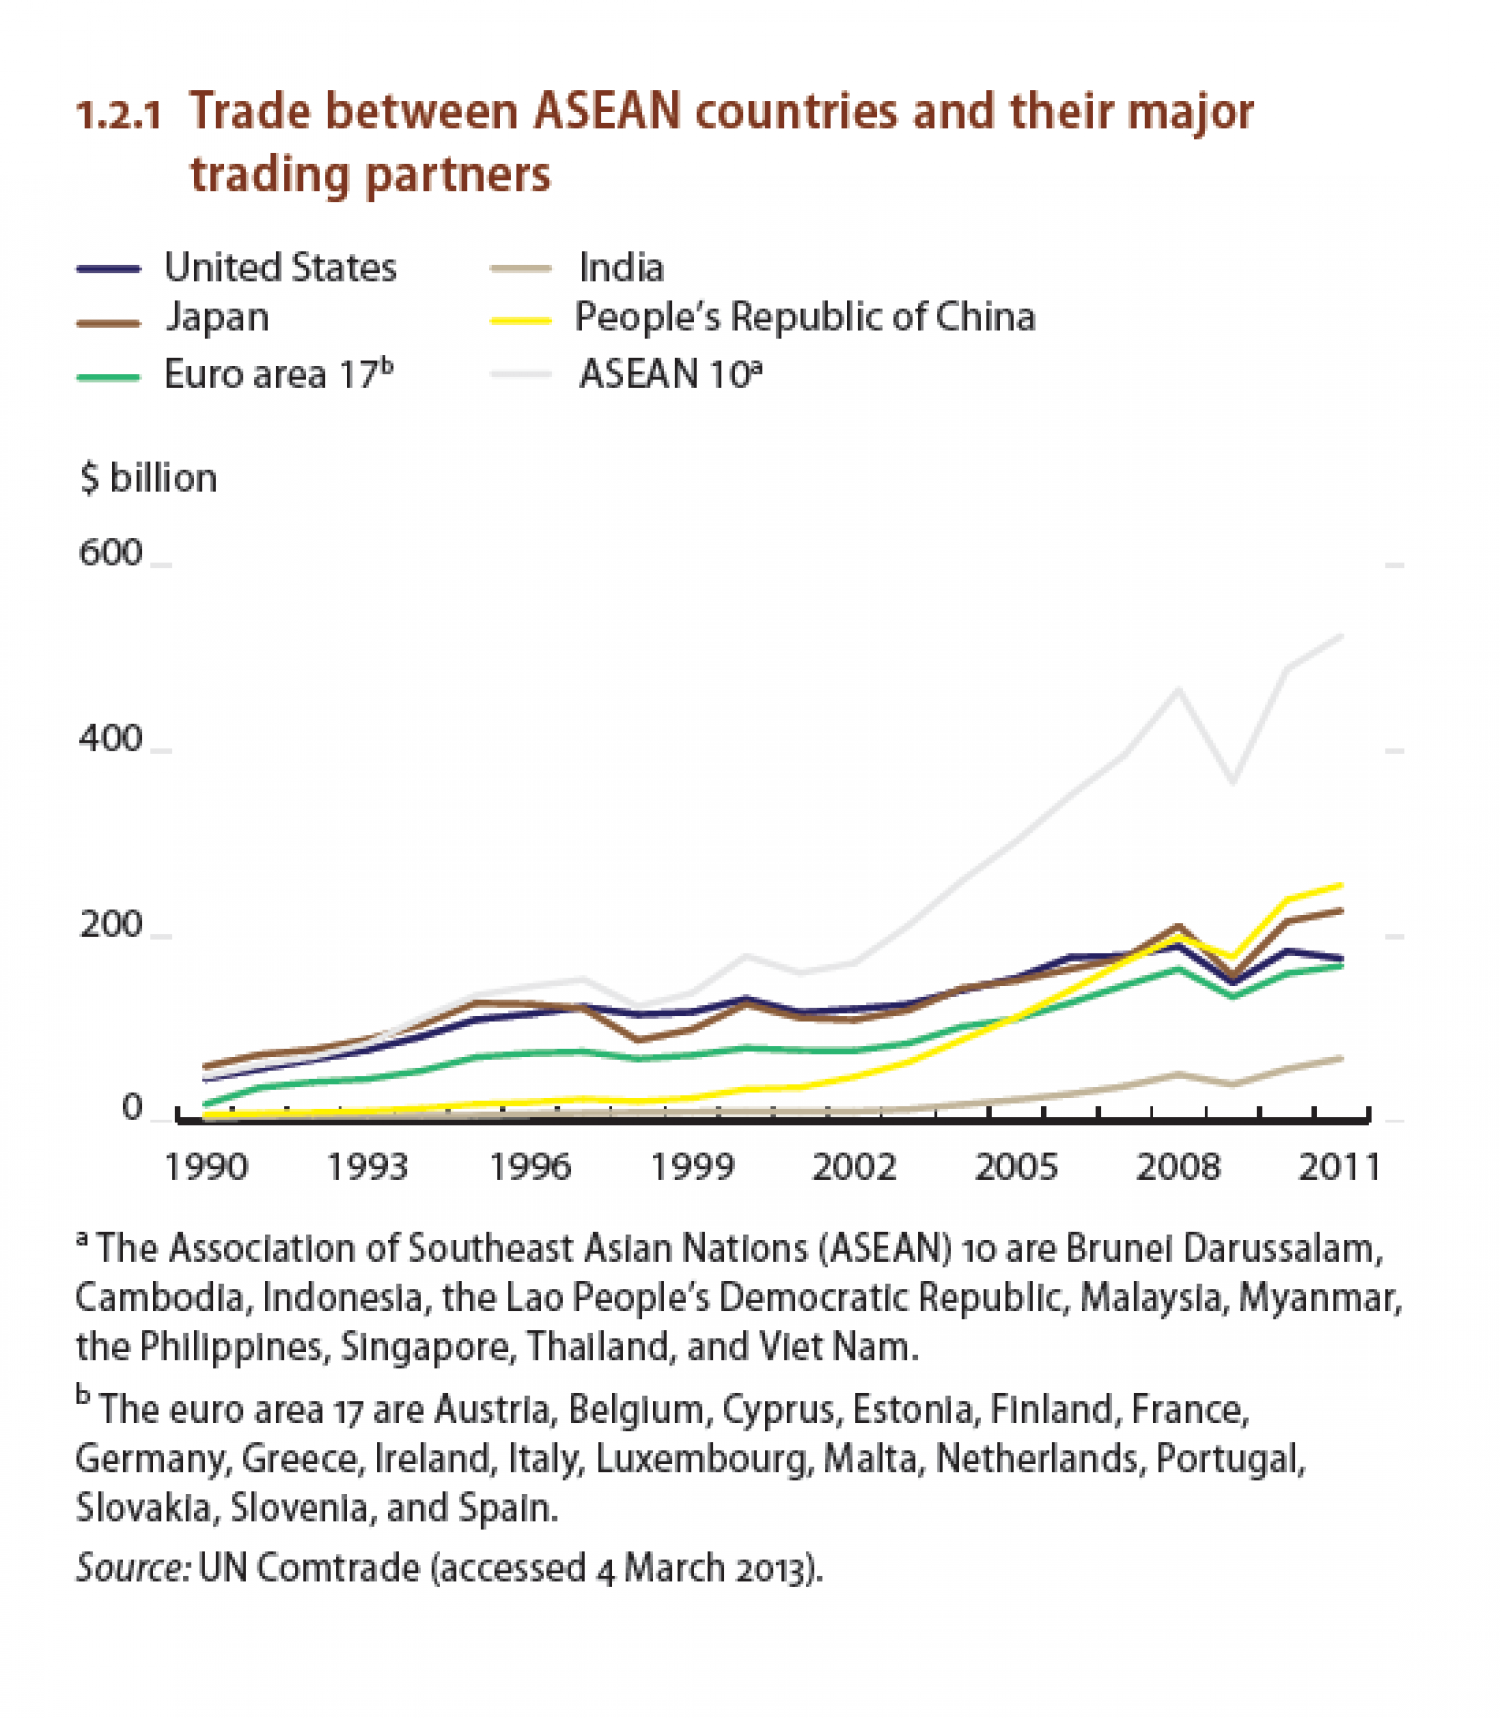 Trade between ASEAN countries and their major trading partners Infographic